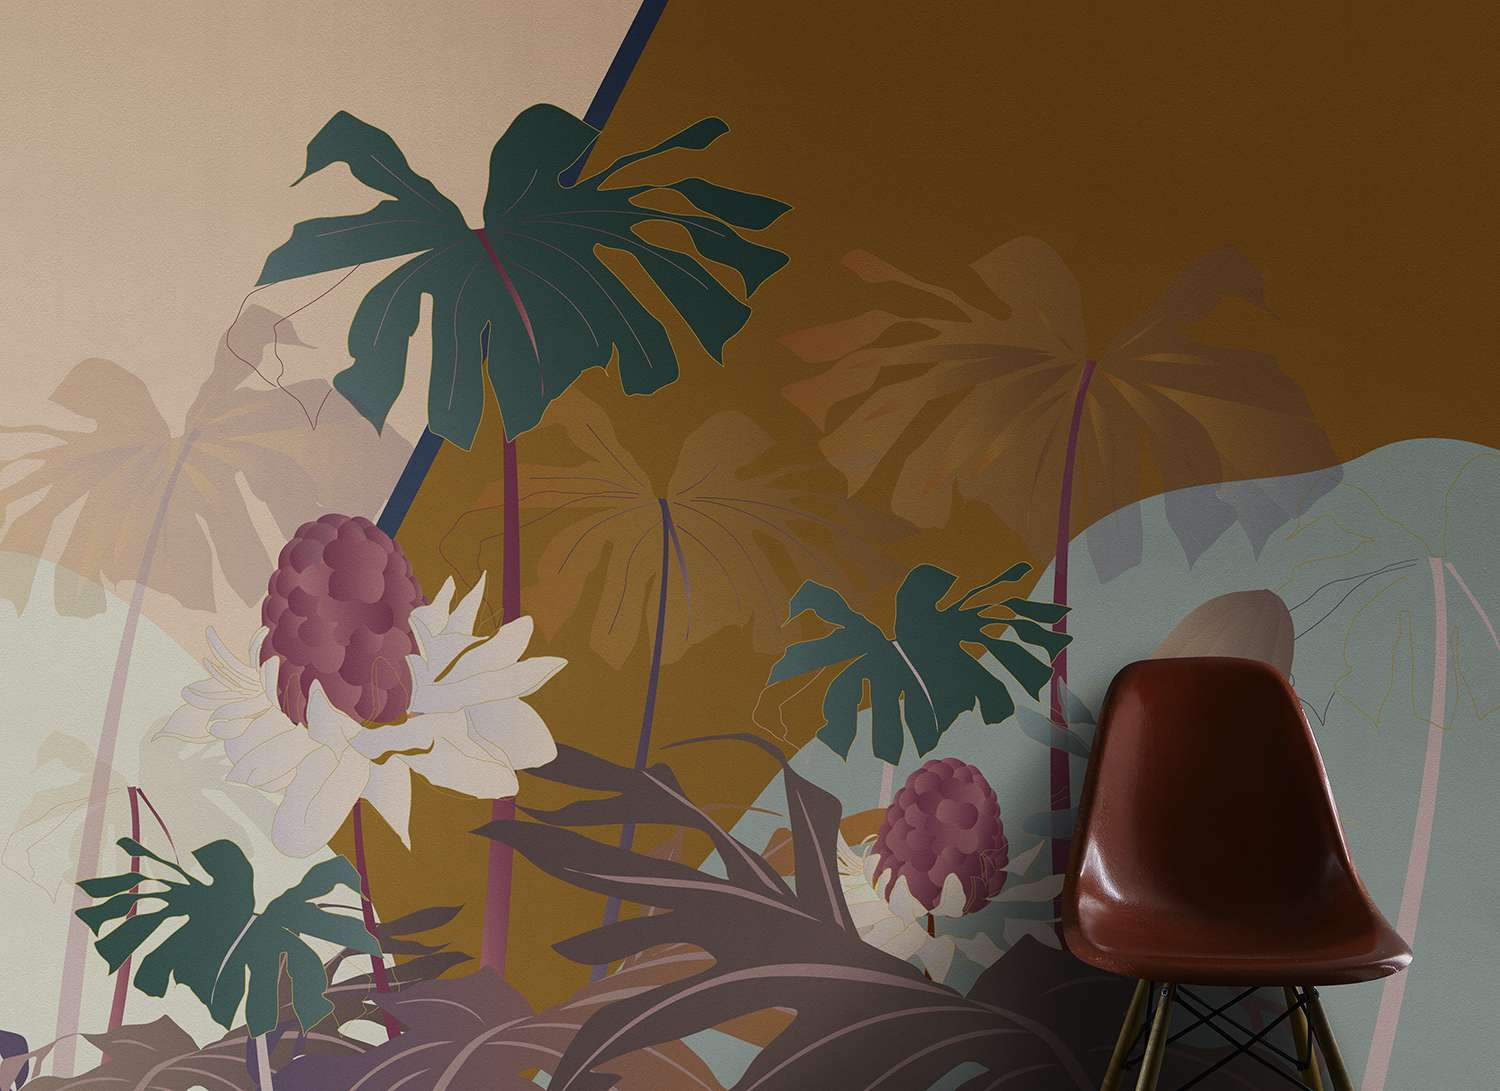 Oasi wallpaper for entrance design by Cristina Celestino on silk wallcoverings